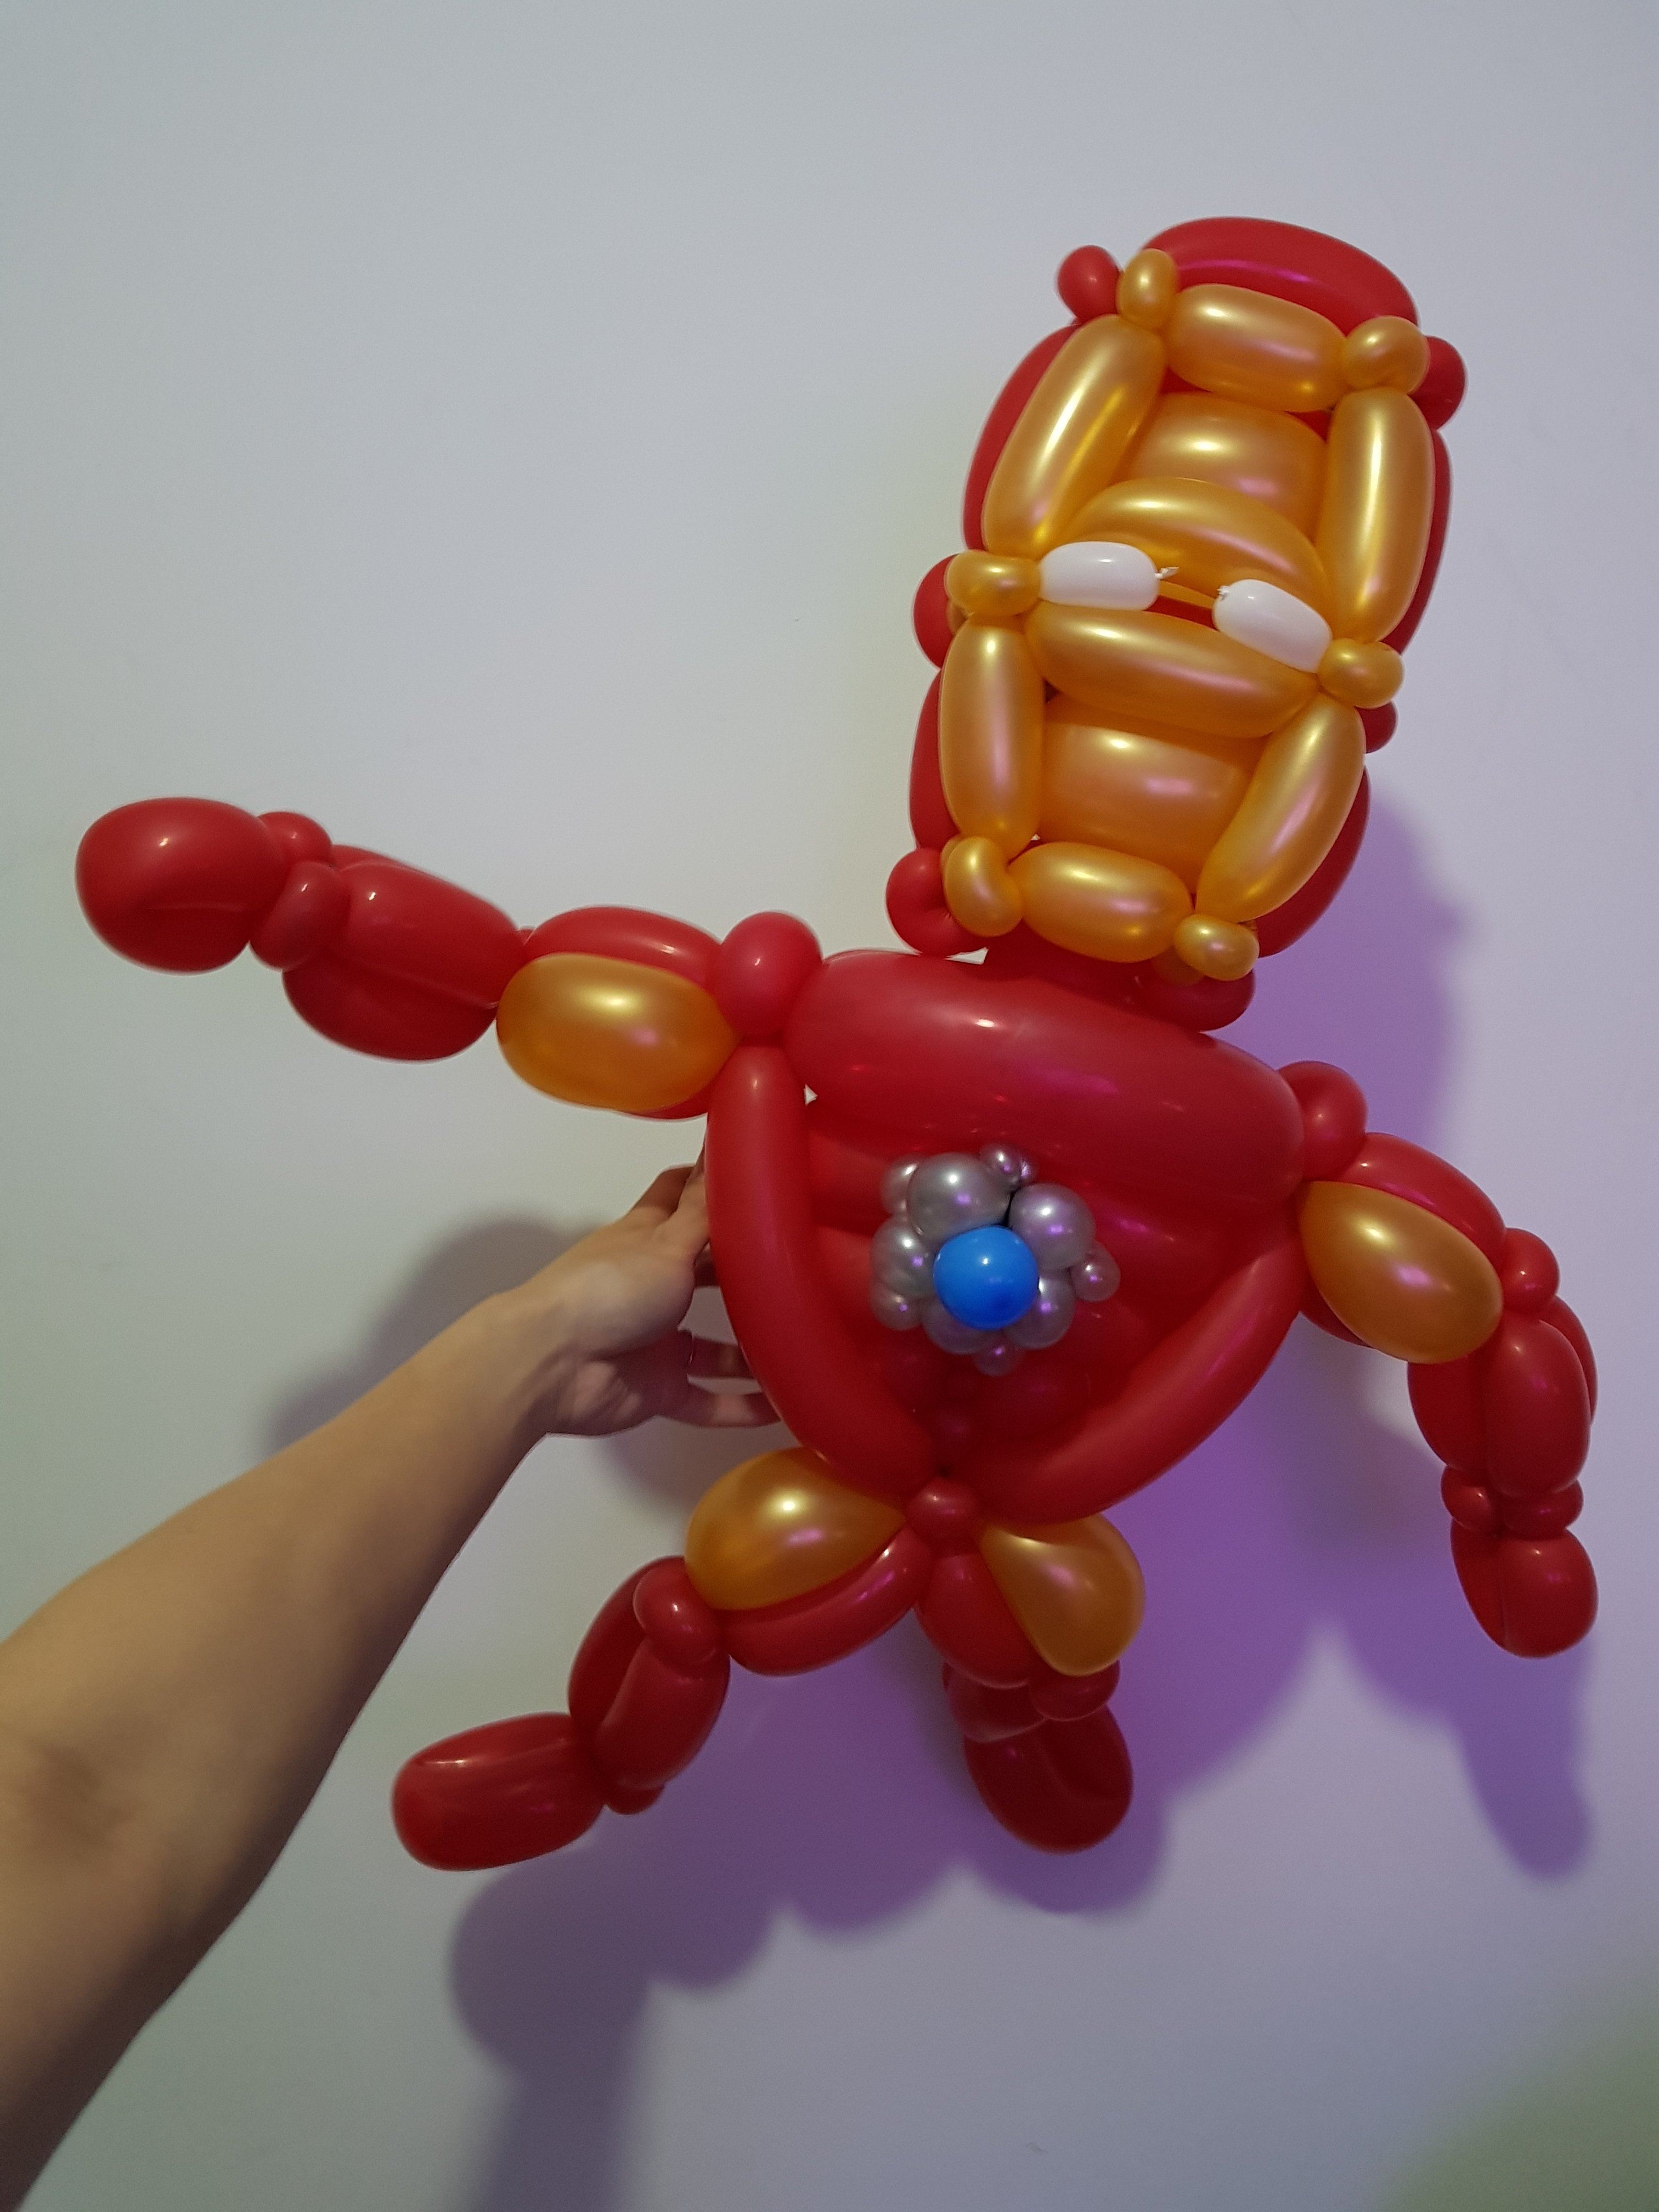 , Marvel & DC comic superheroes!, Singapore Balloon Decoration Services - Balloon Workshop and Balloon Sculpting